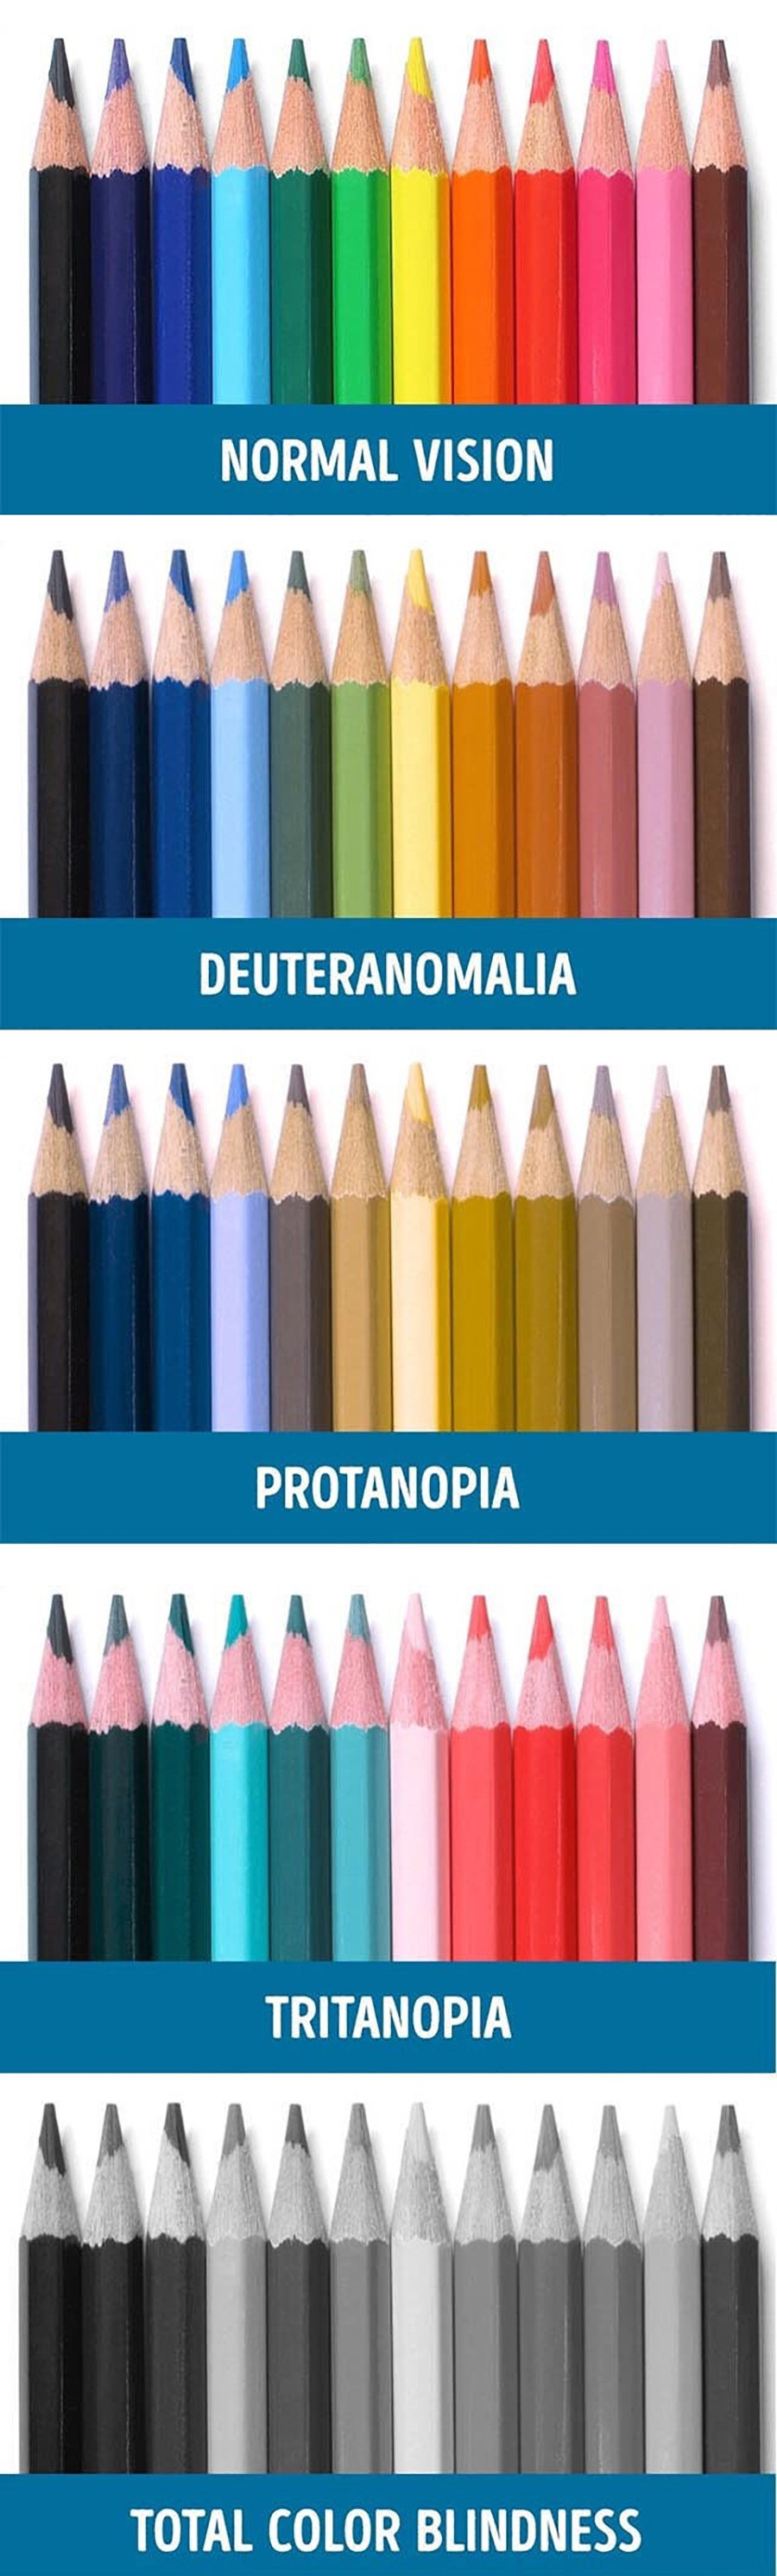 Color Blindness Demonstration Using Coloured Pencils